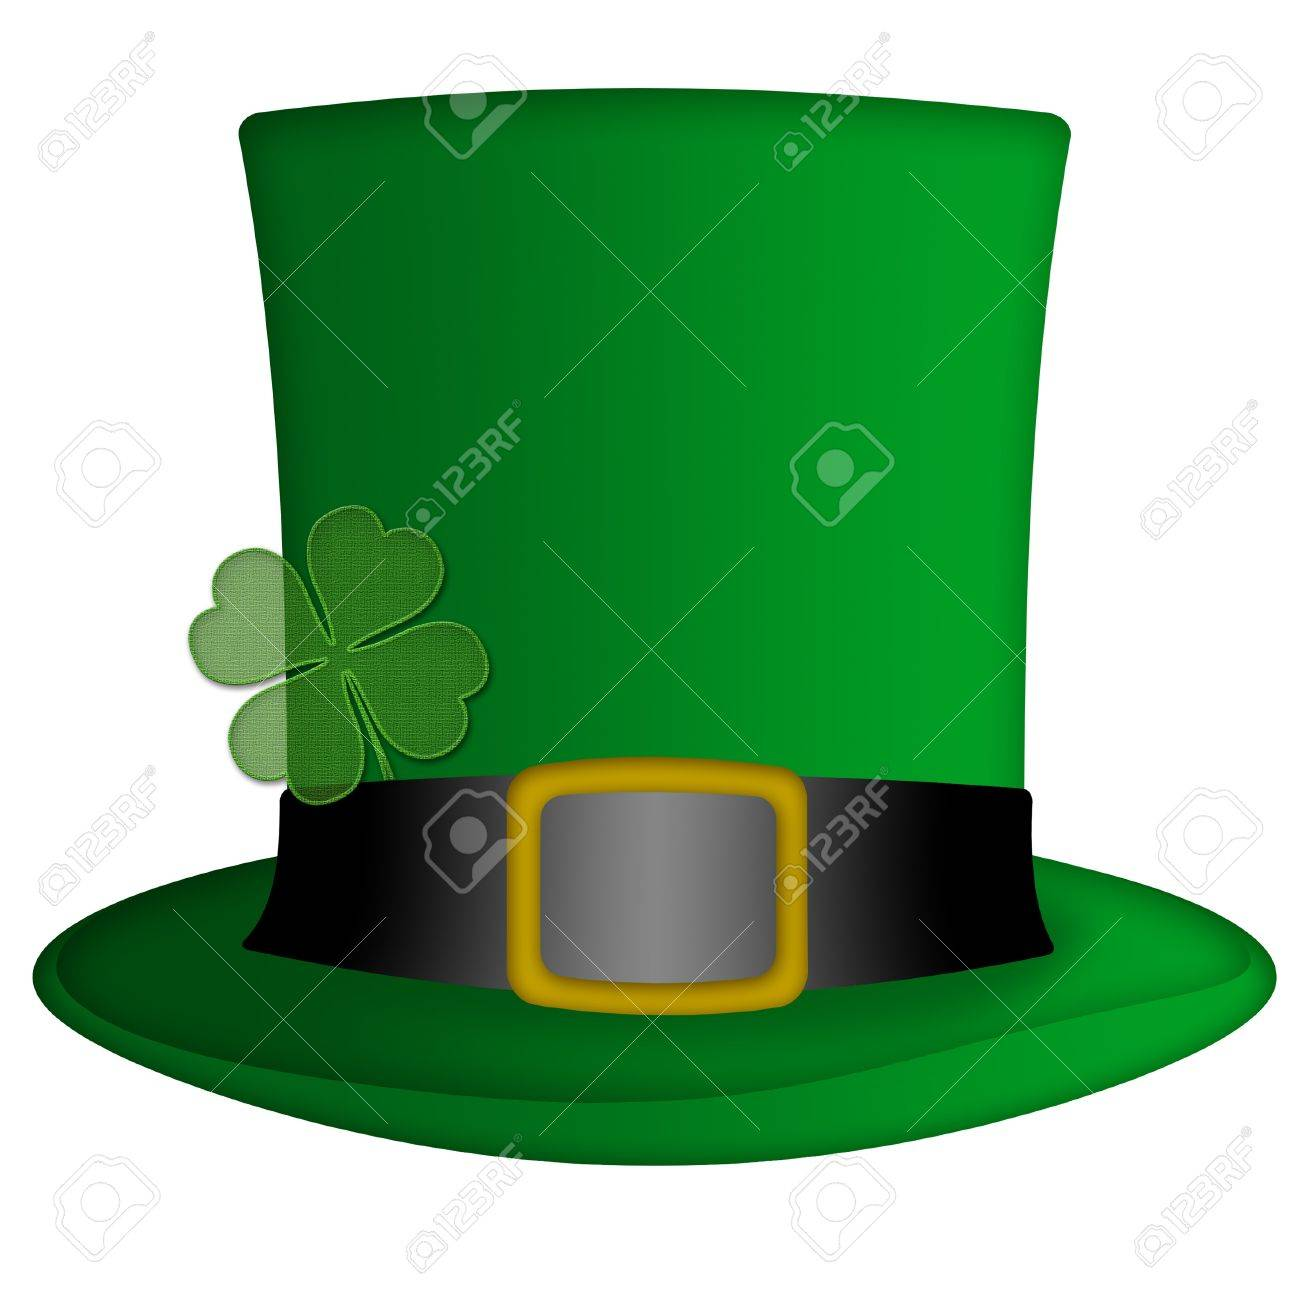 St Patricks Day Irish Leprechaun Hat Illustration Stock Illustration - 8937980